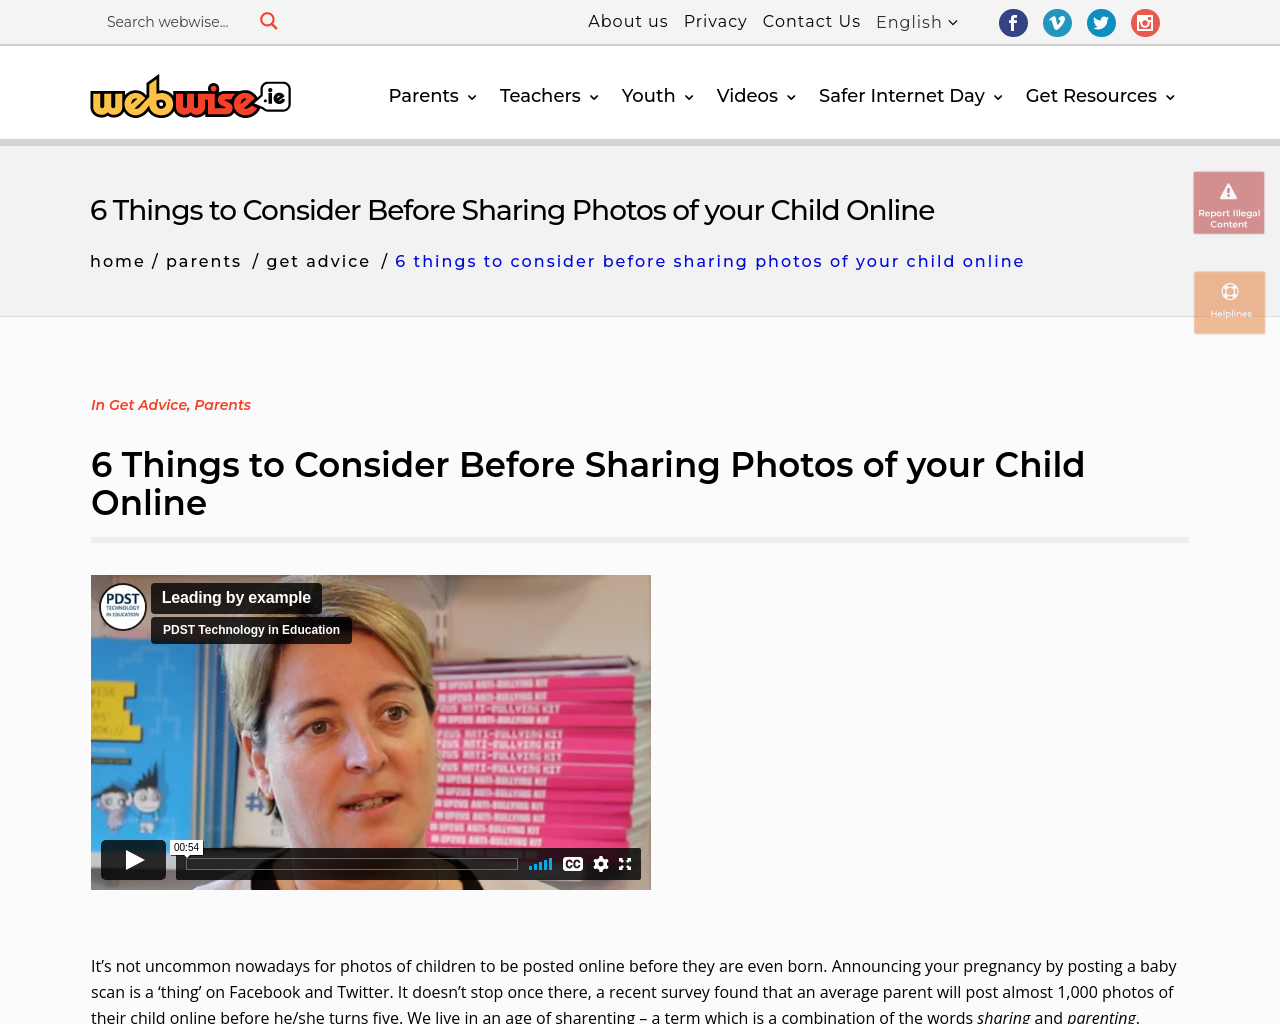 6 things to think about before sharing photos of your child online